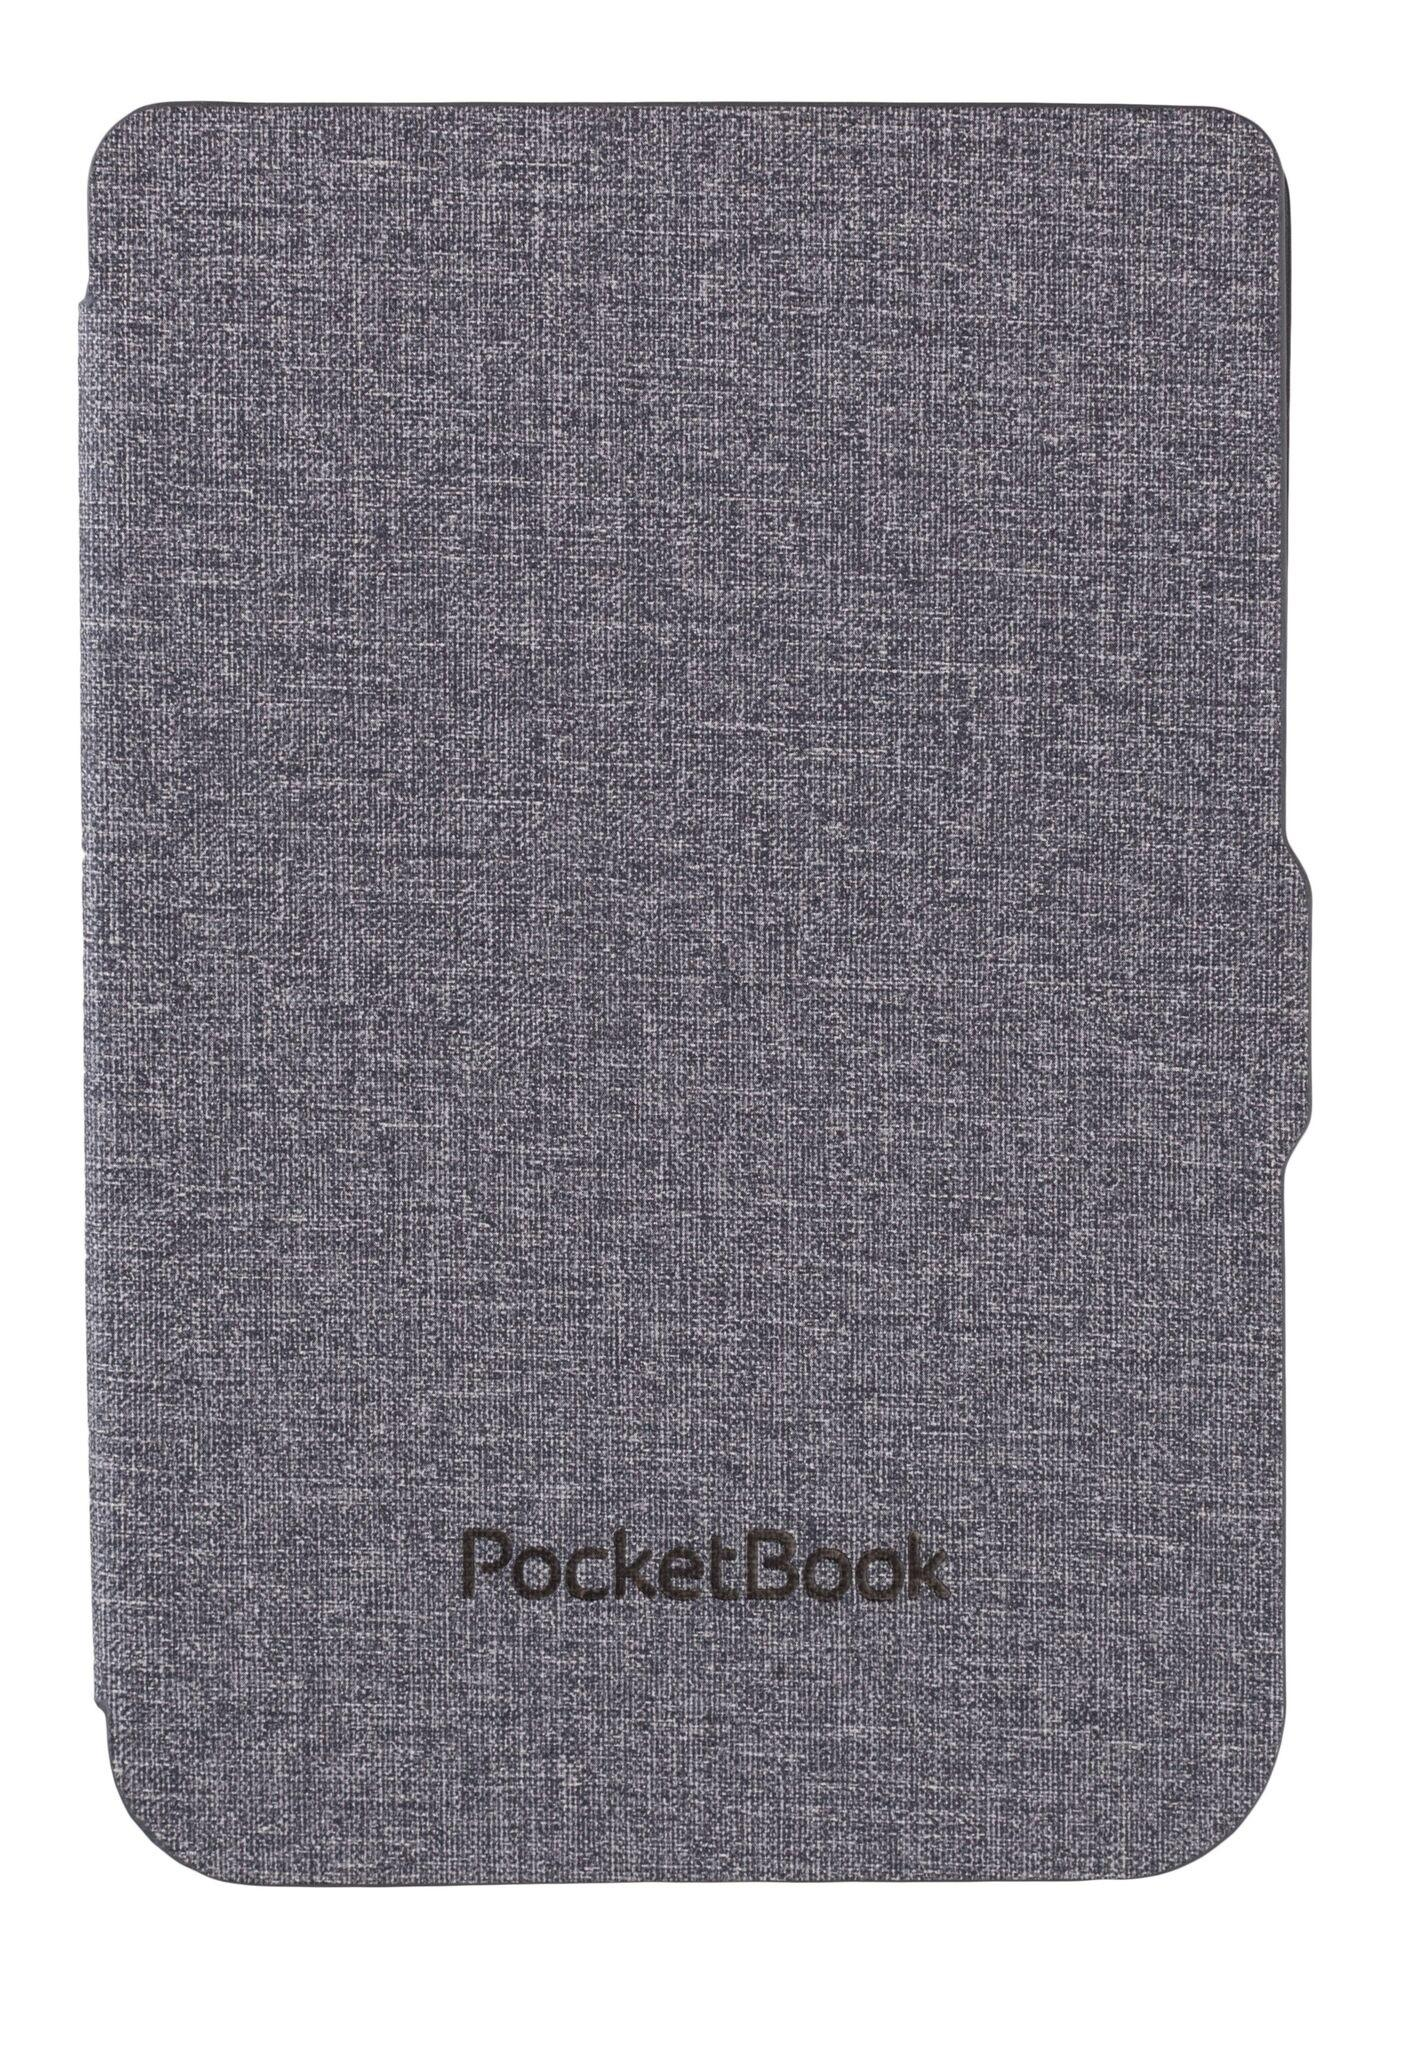 Калъф PocketBook Shell Cover Light Grey/Black за eBook четец, 6 inch, Сив